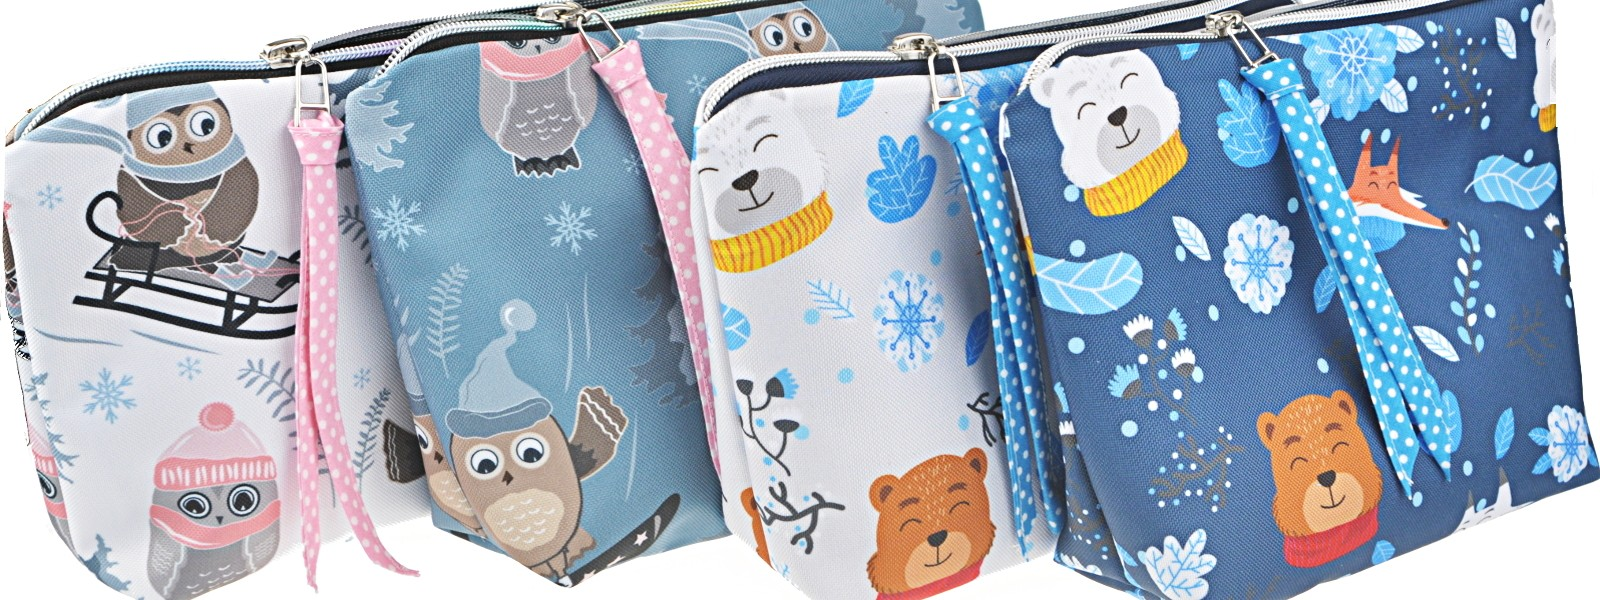 Washbags Wintertiere